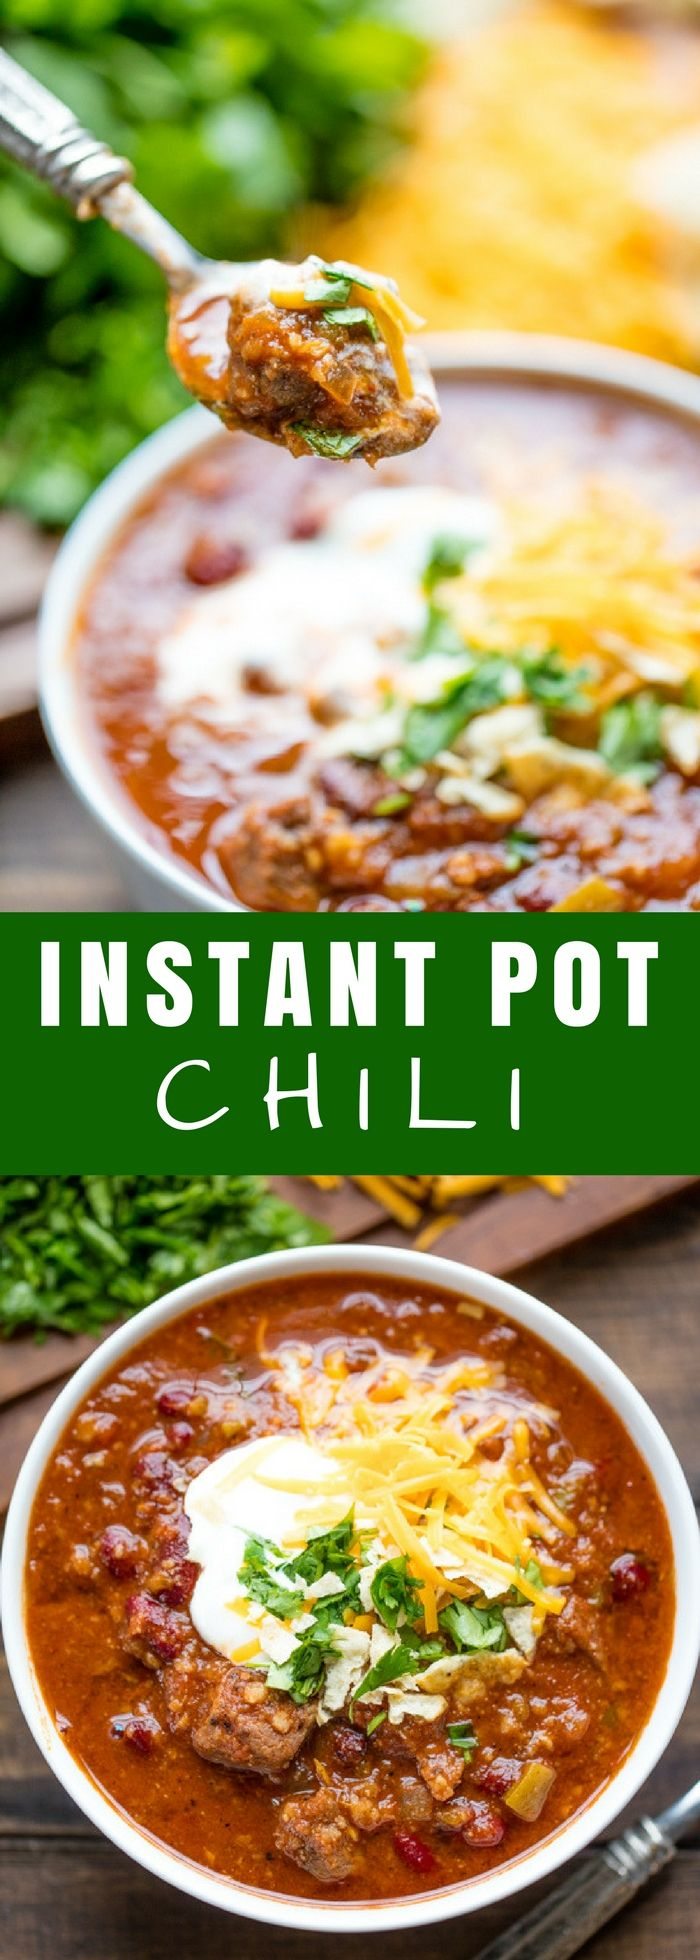 This Instant Pot Chili recipe is full of meaty goodness in this easy to make recipe that utilizes the hottest kitchen appliance trend: the electric pressure cooker. #instantpot #chili